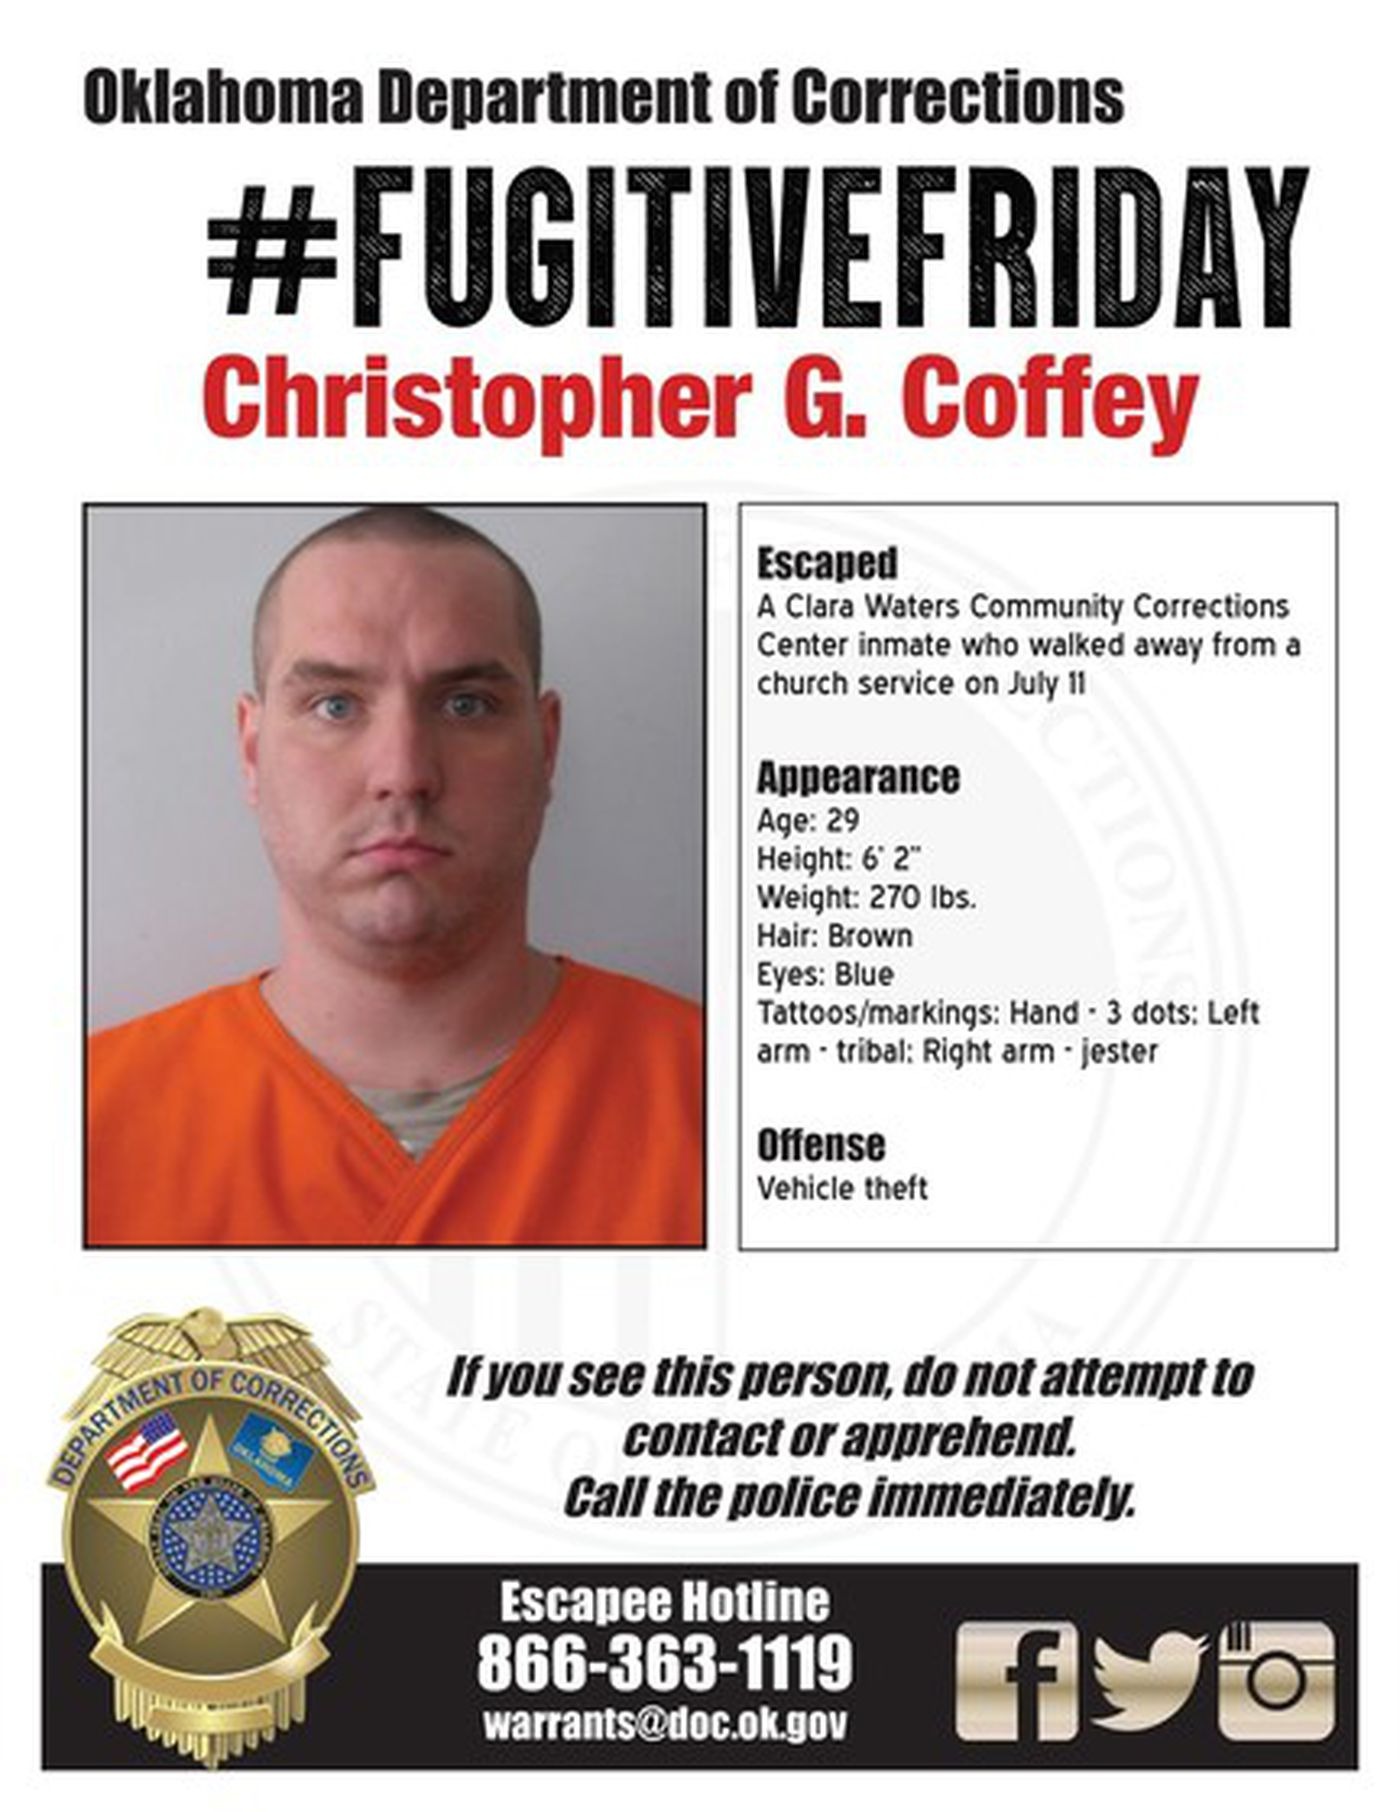 Fugitive Friday: Christopher Coffey